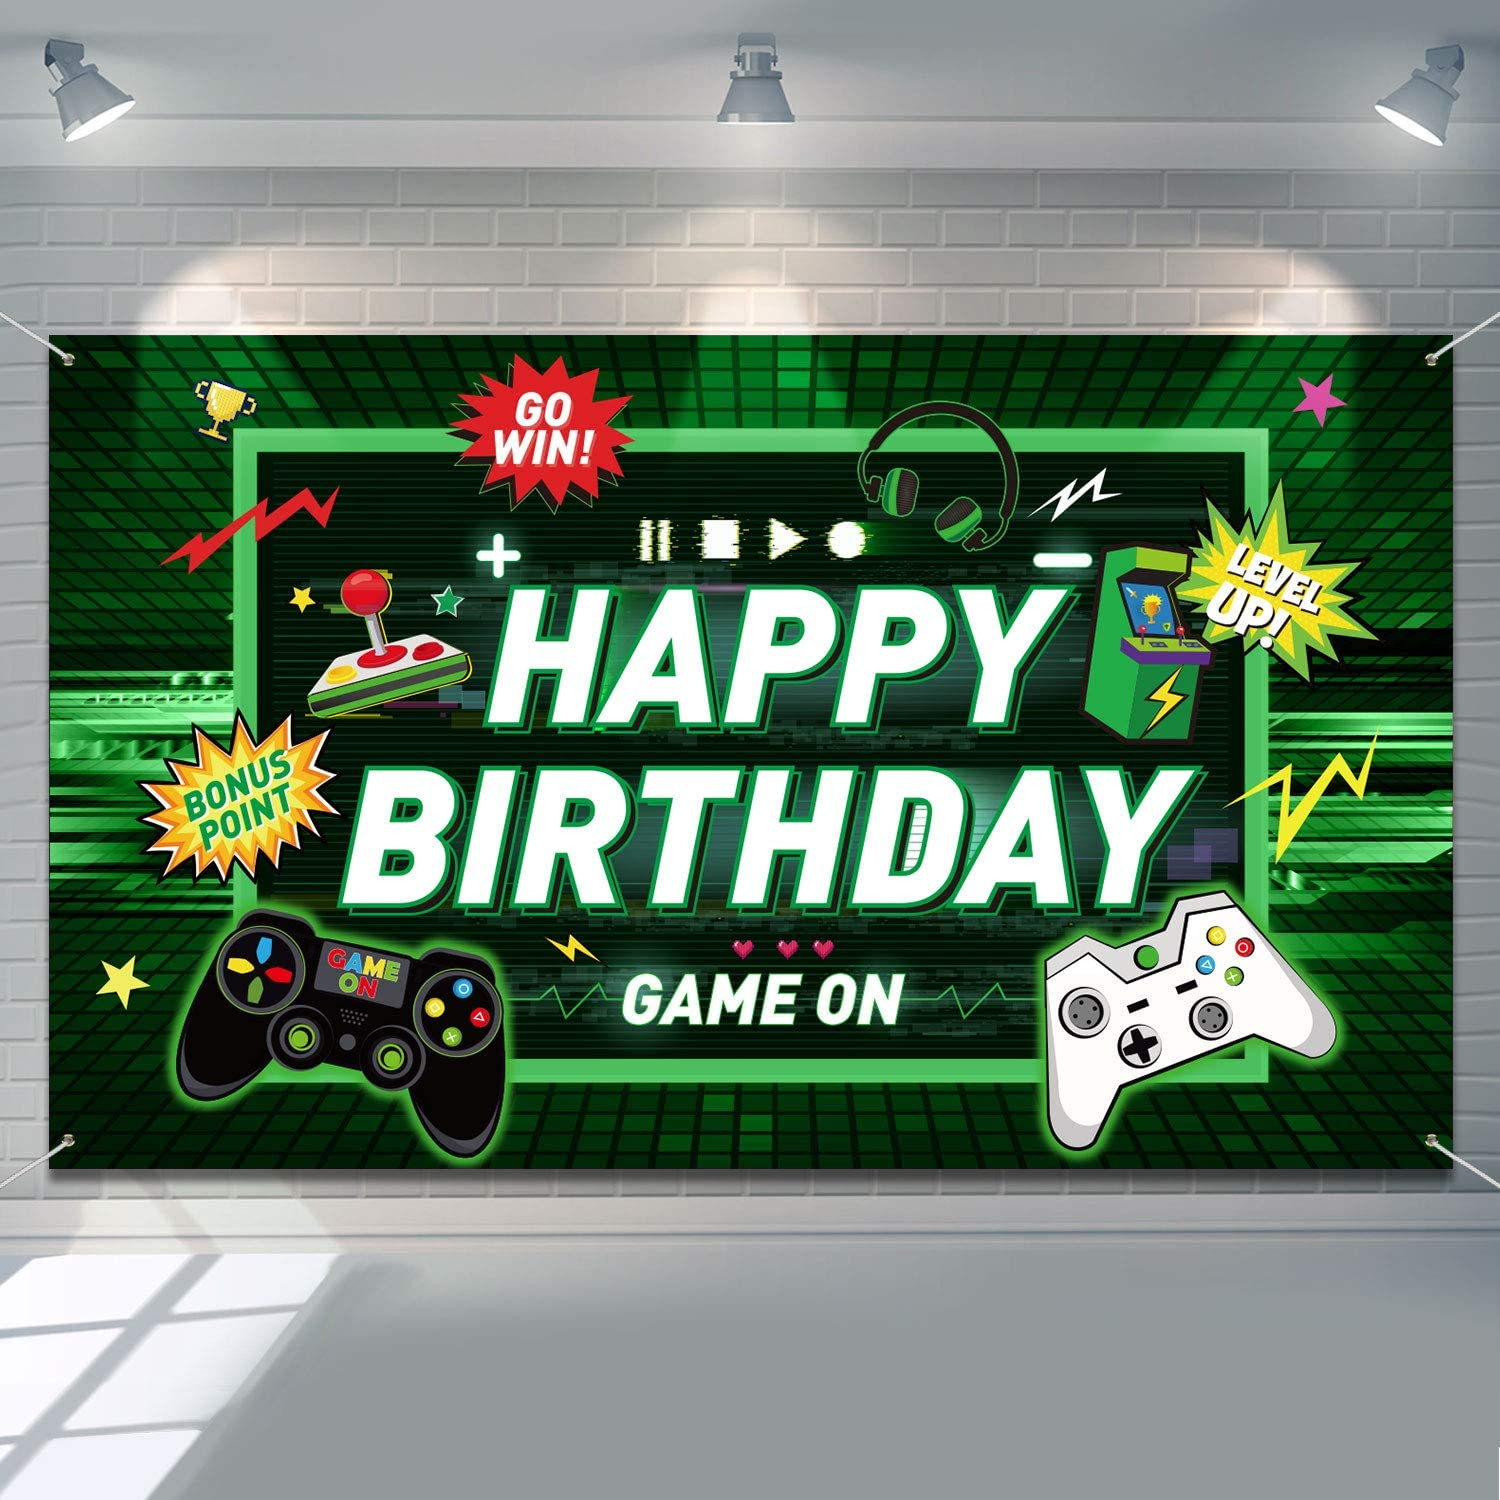 Video Game Happy Birthday Backdrop Gaming Theme Party Photography Background For Kids Boys Birthday Party Decorations Walmart Com Walmart Com